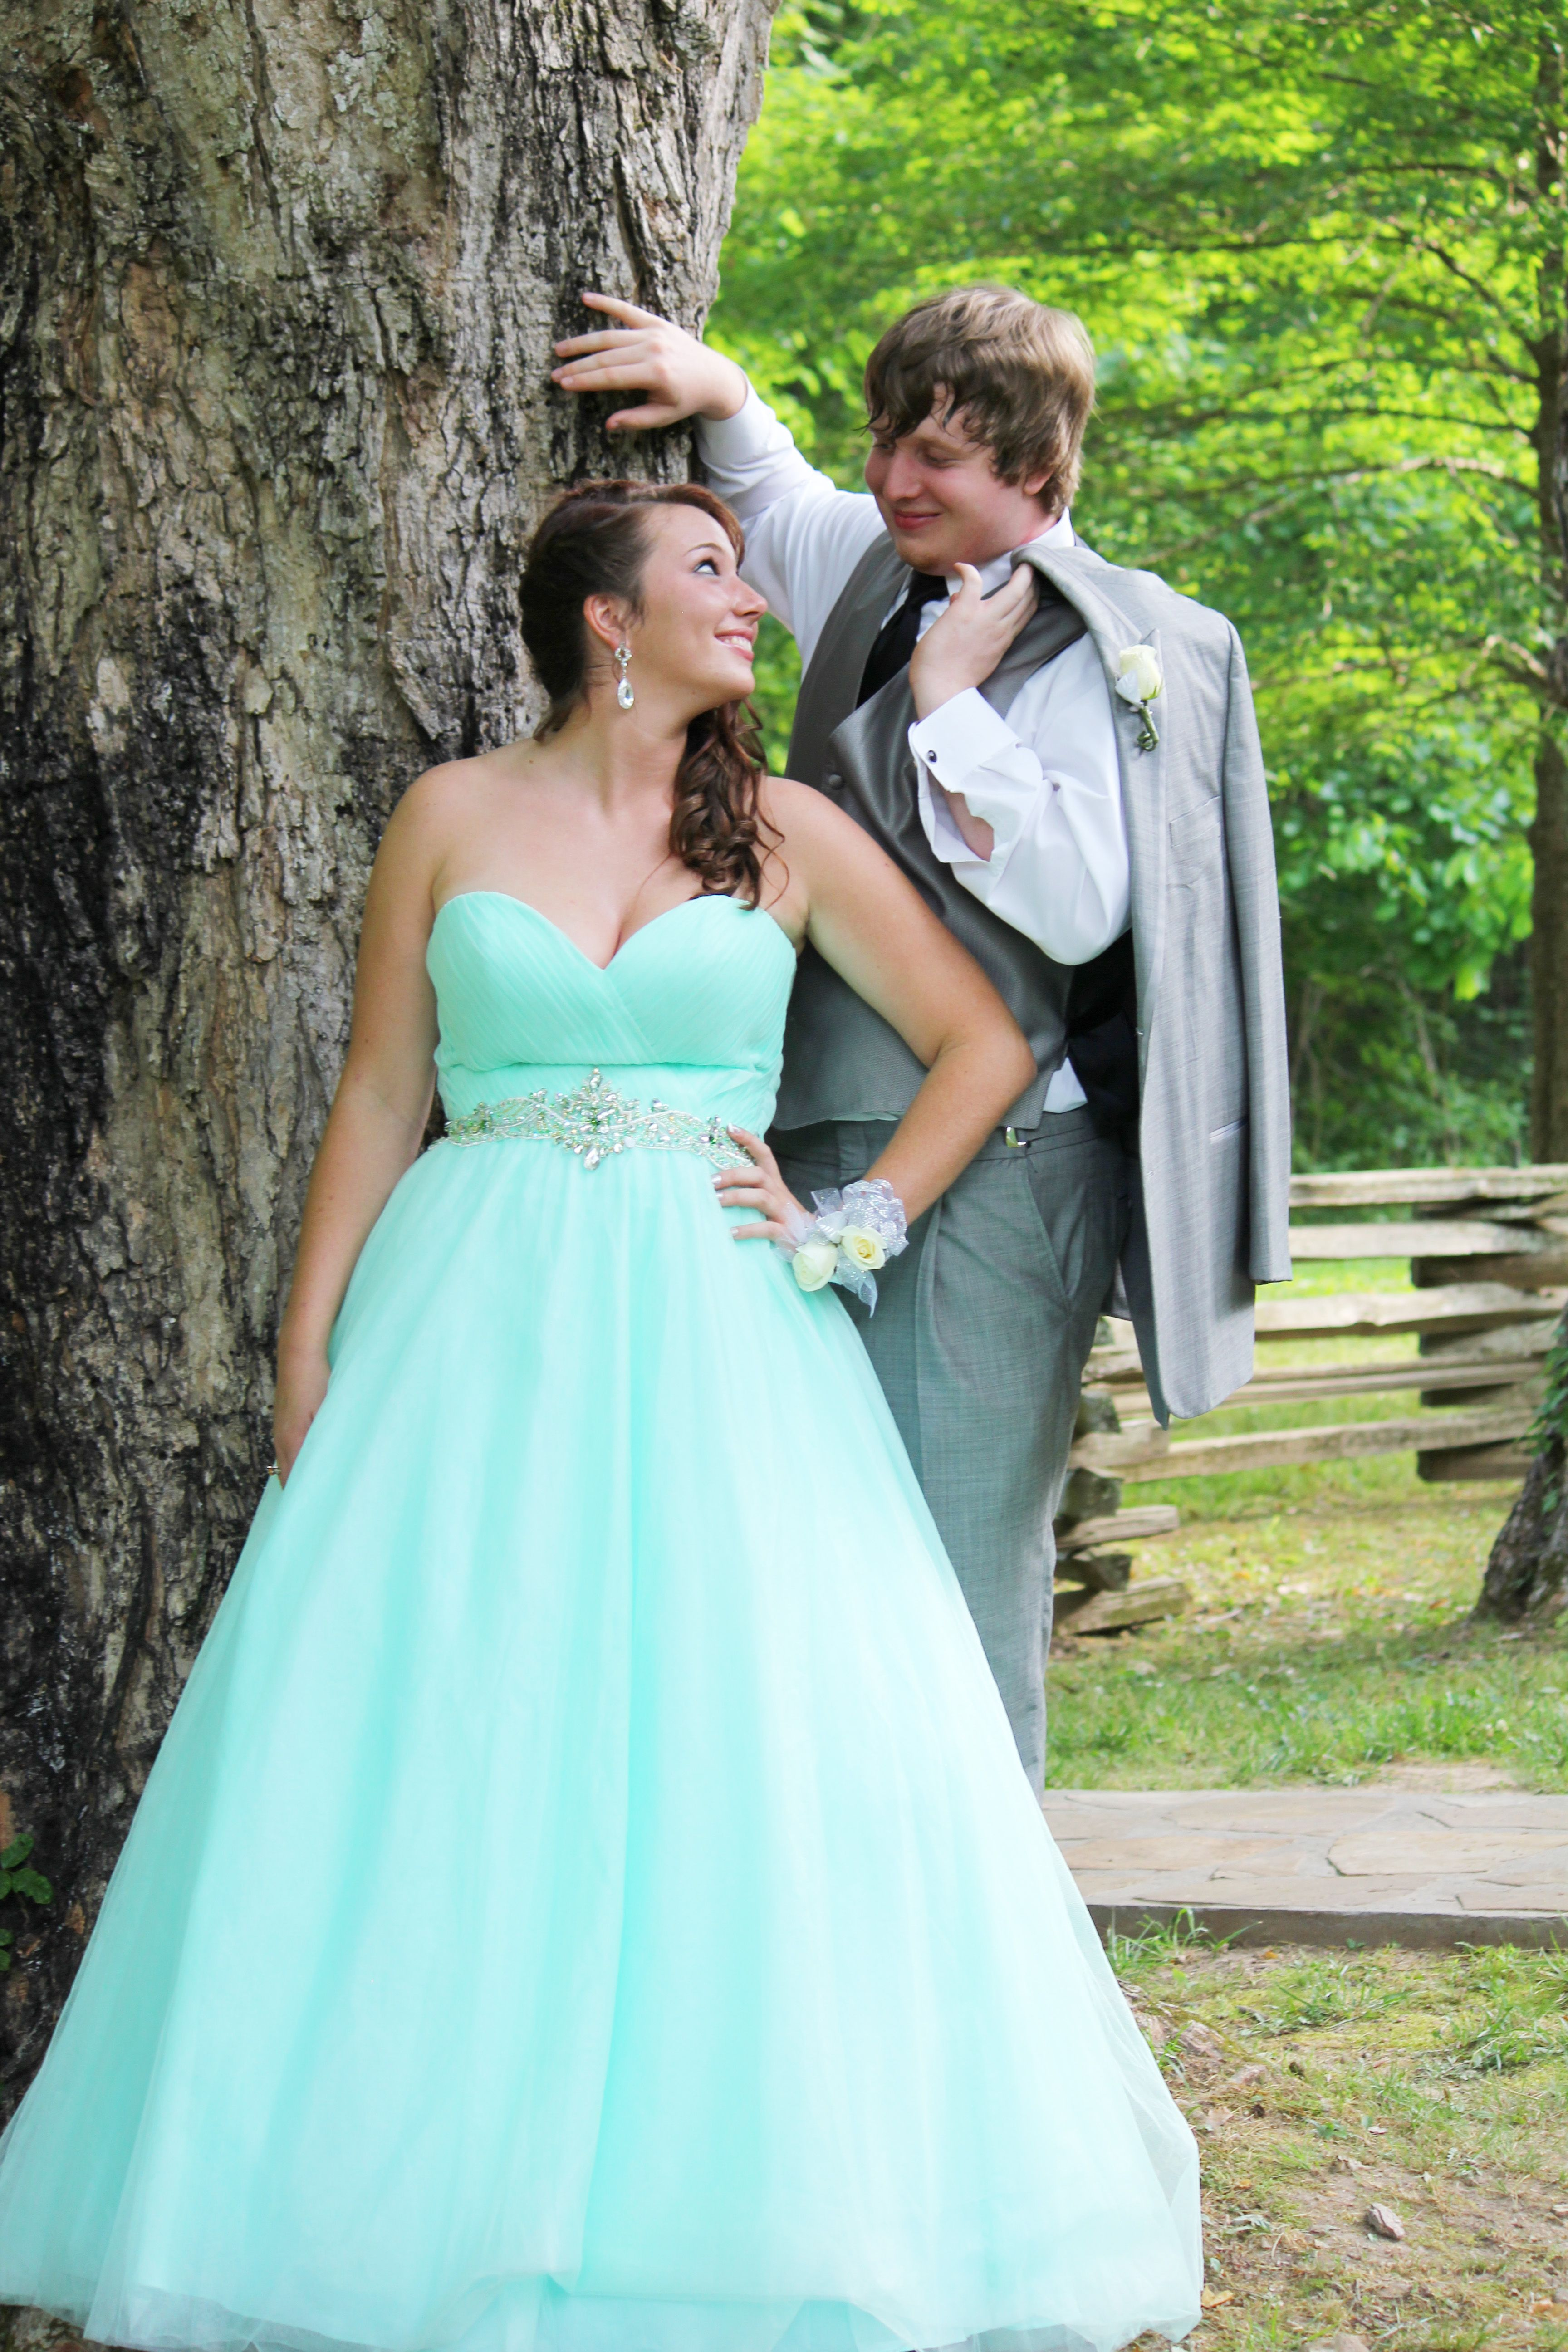 prom and couple pictures | Prom pictures | Pinterest | Prom, Couples ...